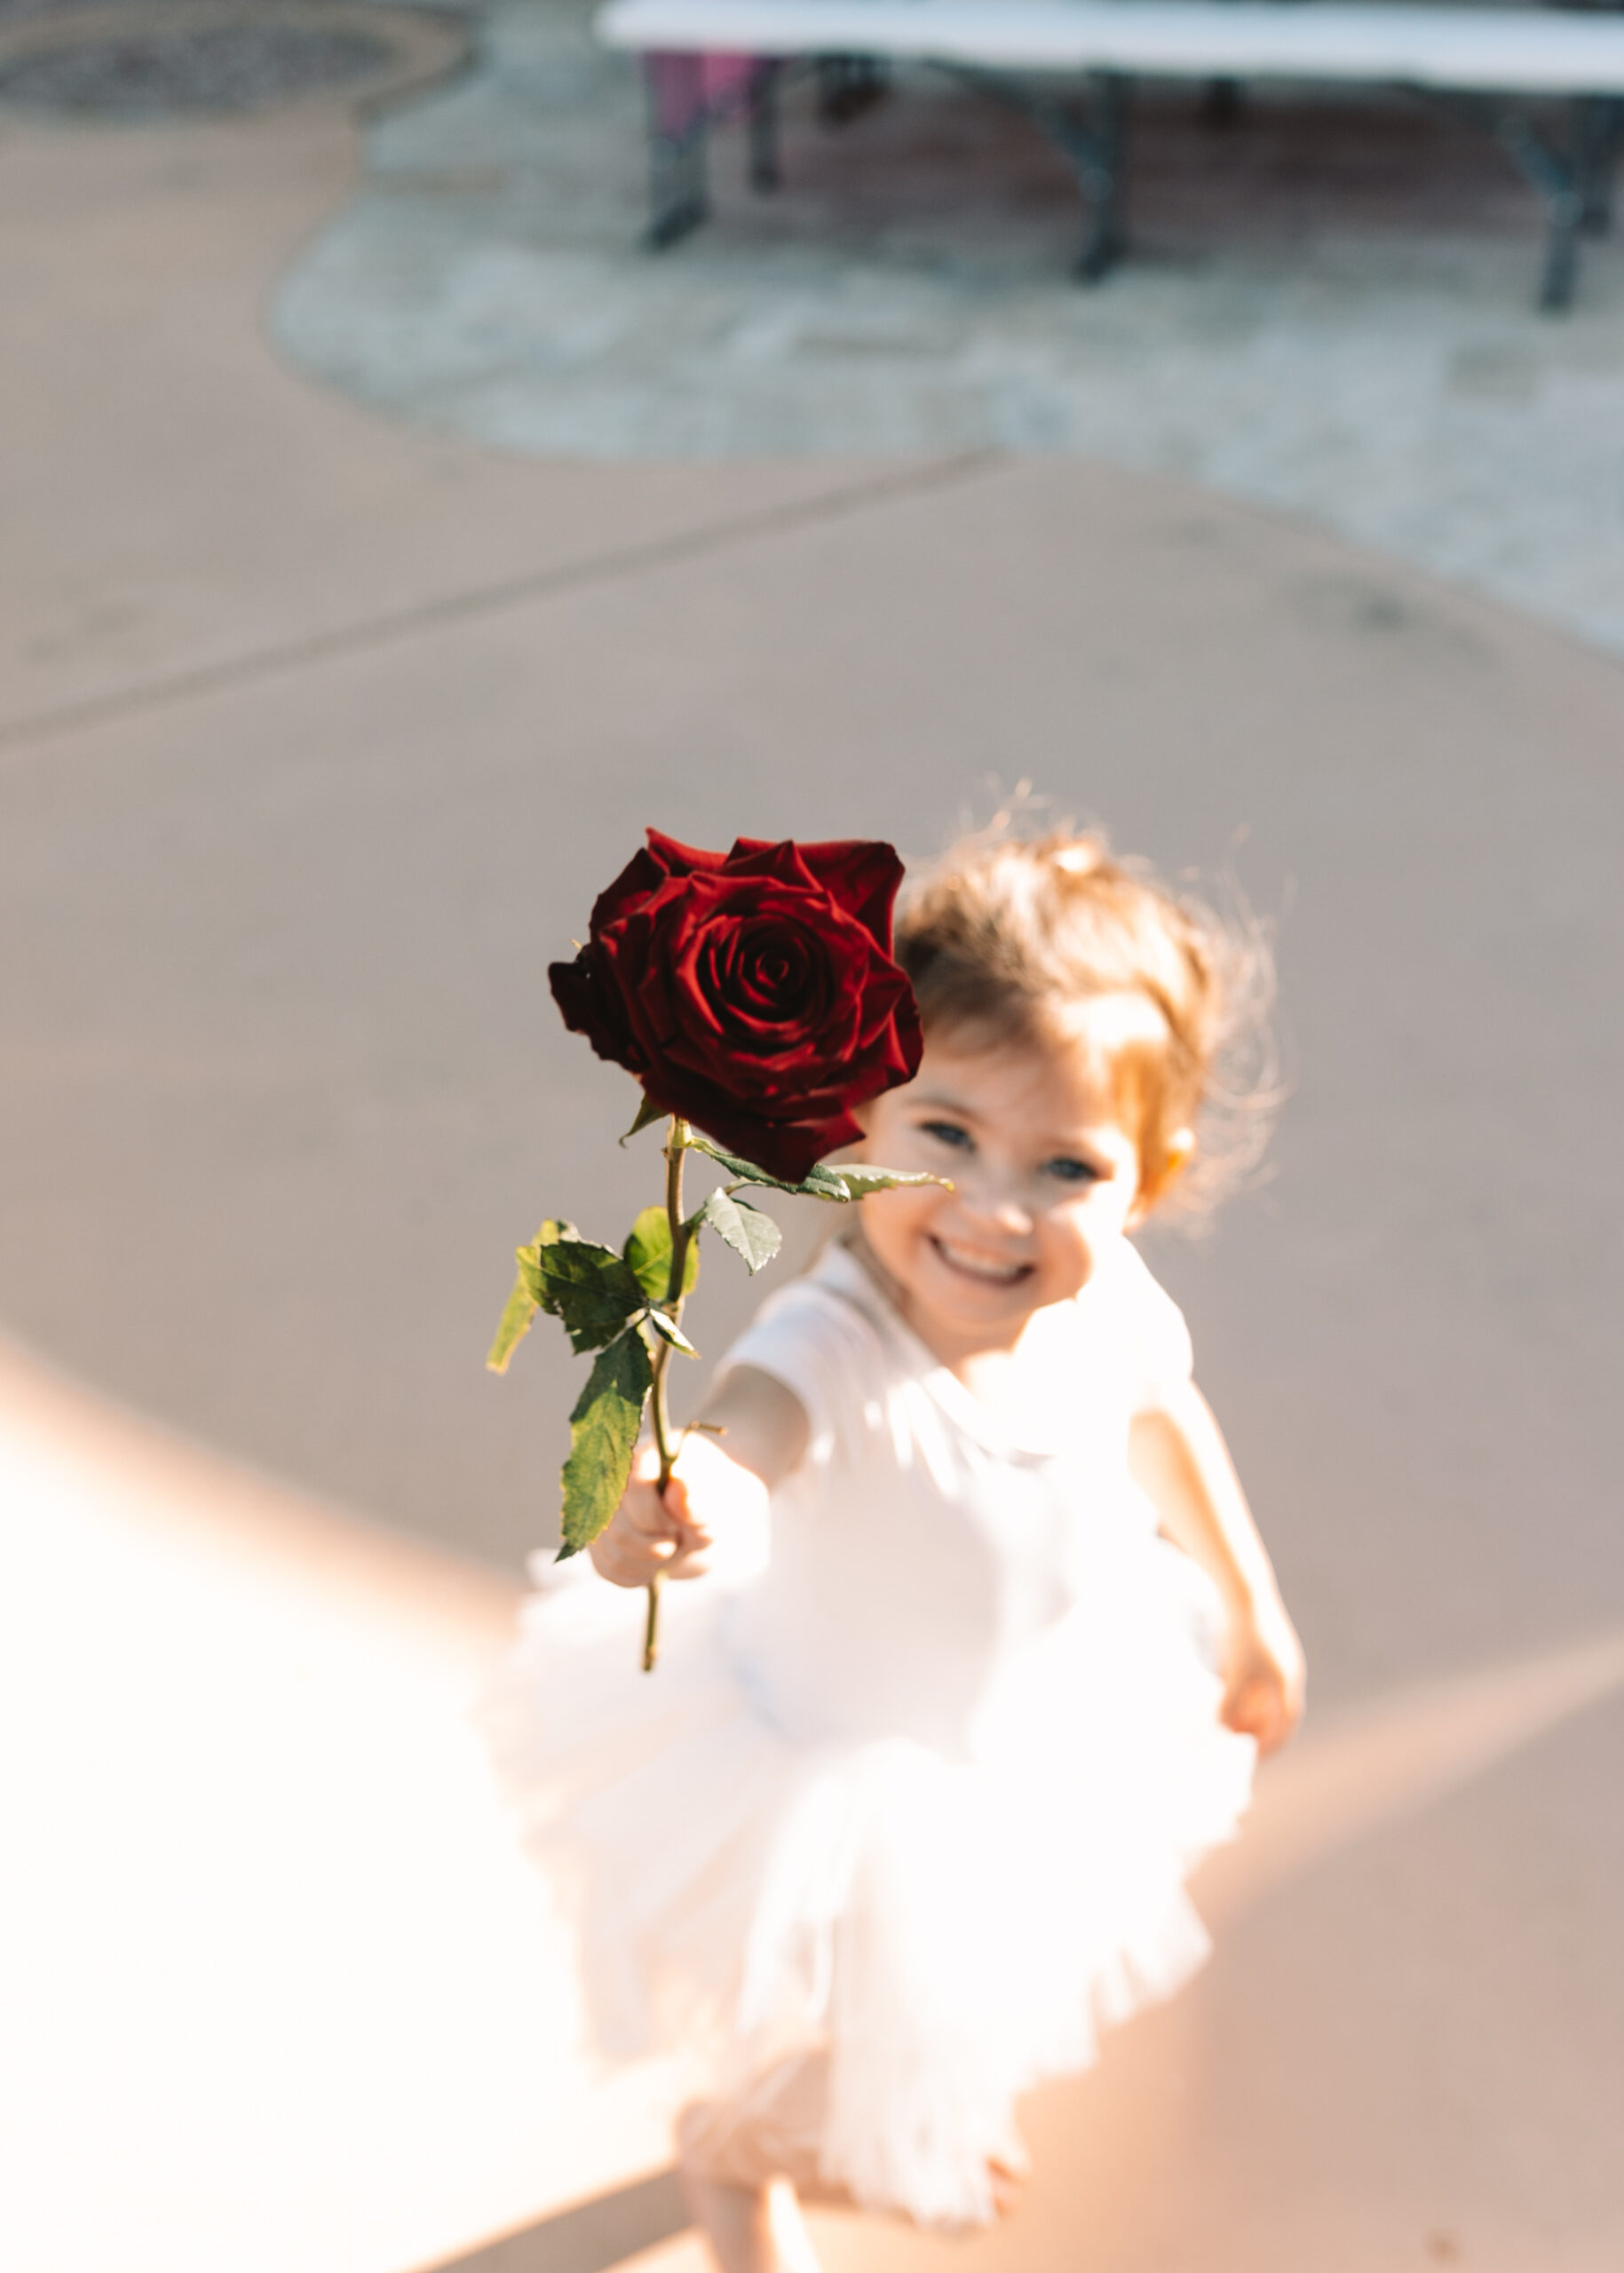 will you accept this rose? #valentinesdayplaydate #roses #galentines